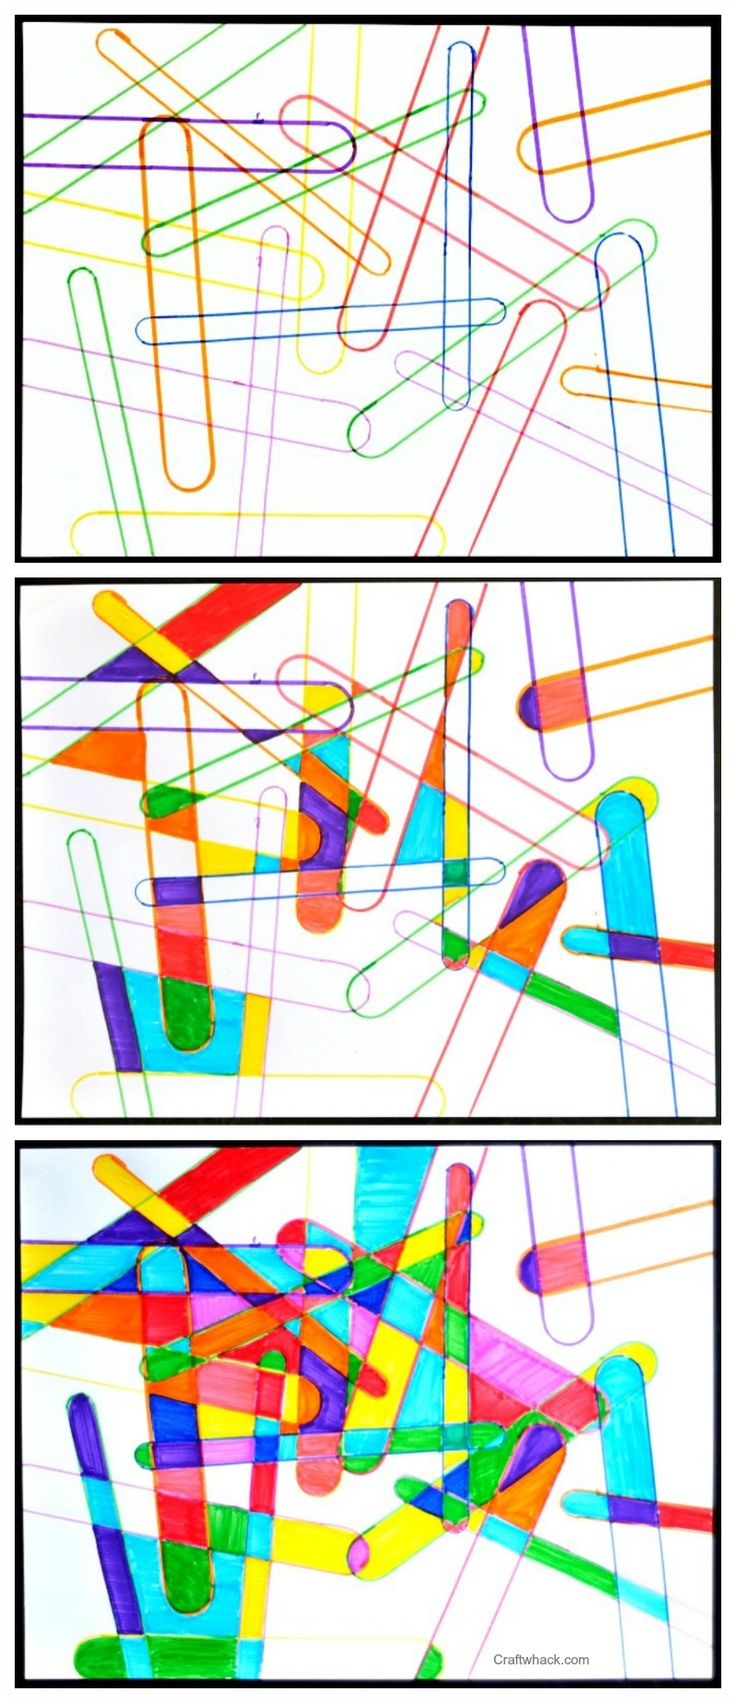 Easy drawing project for kids or for you if you want to make your own easy coloring page. This is fun stuff.